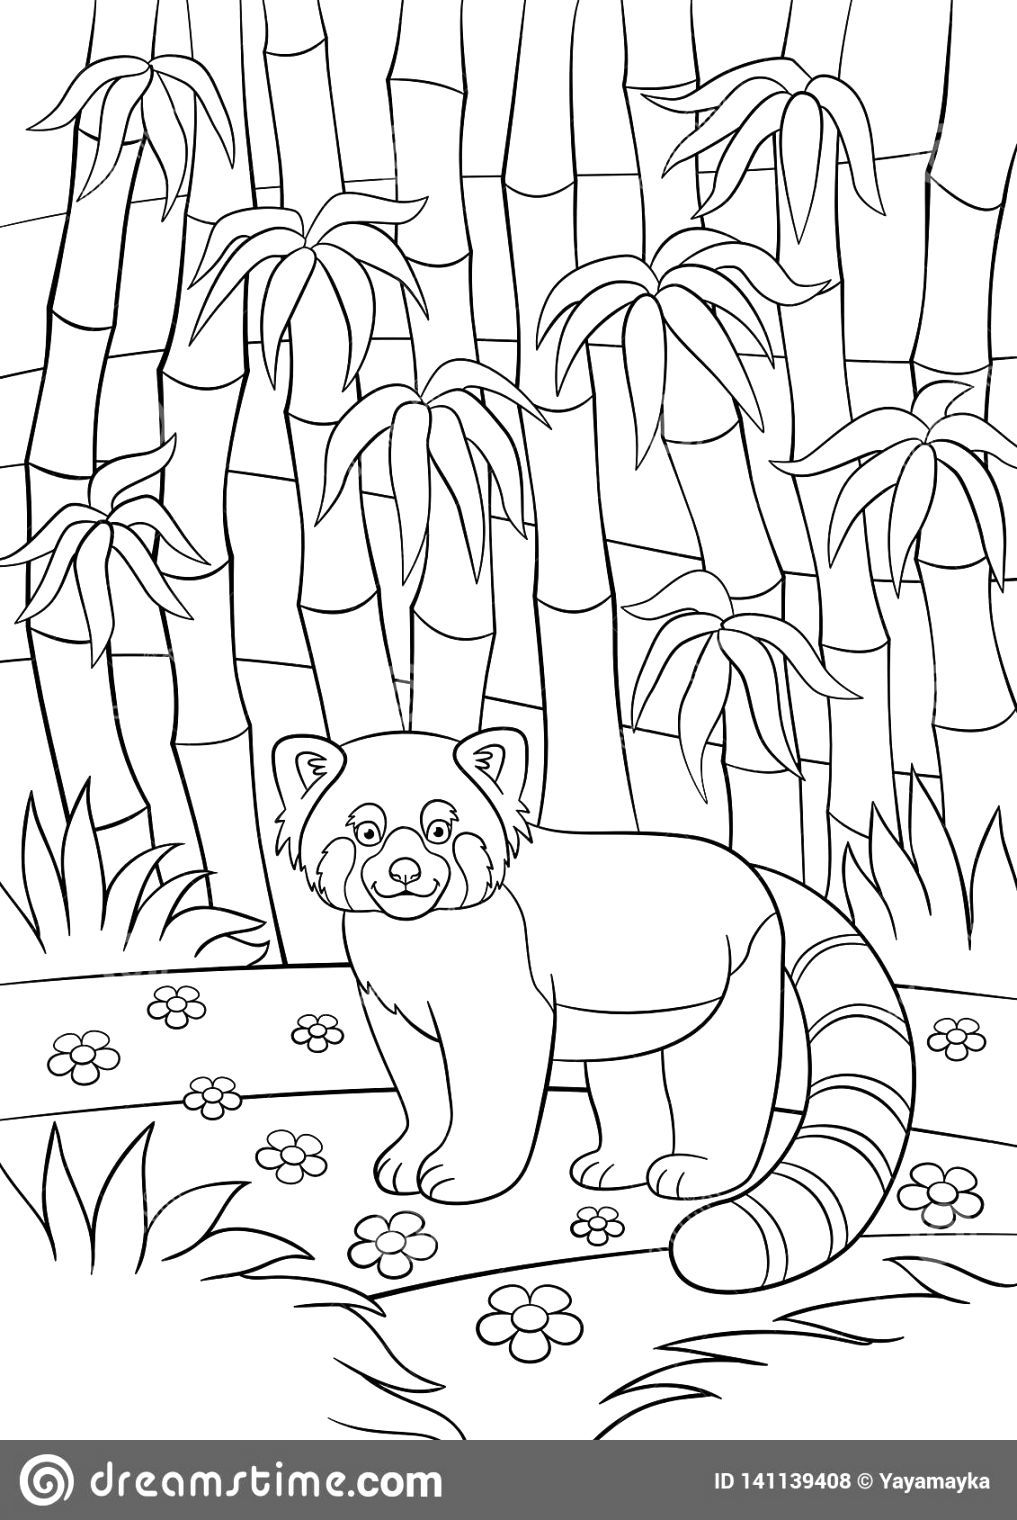 Make your panda coloring pages to print